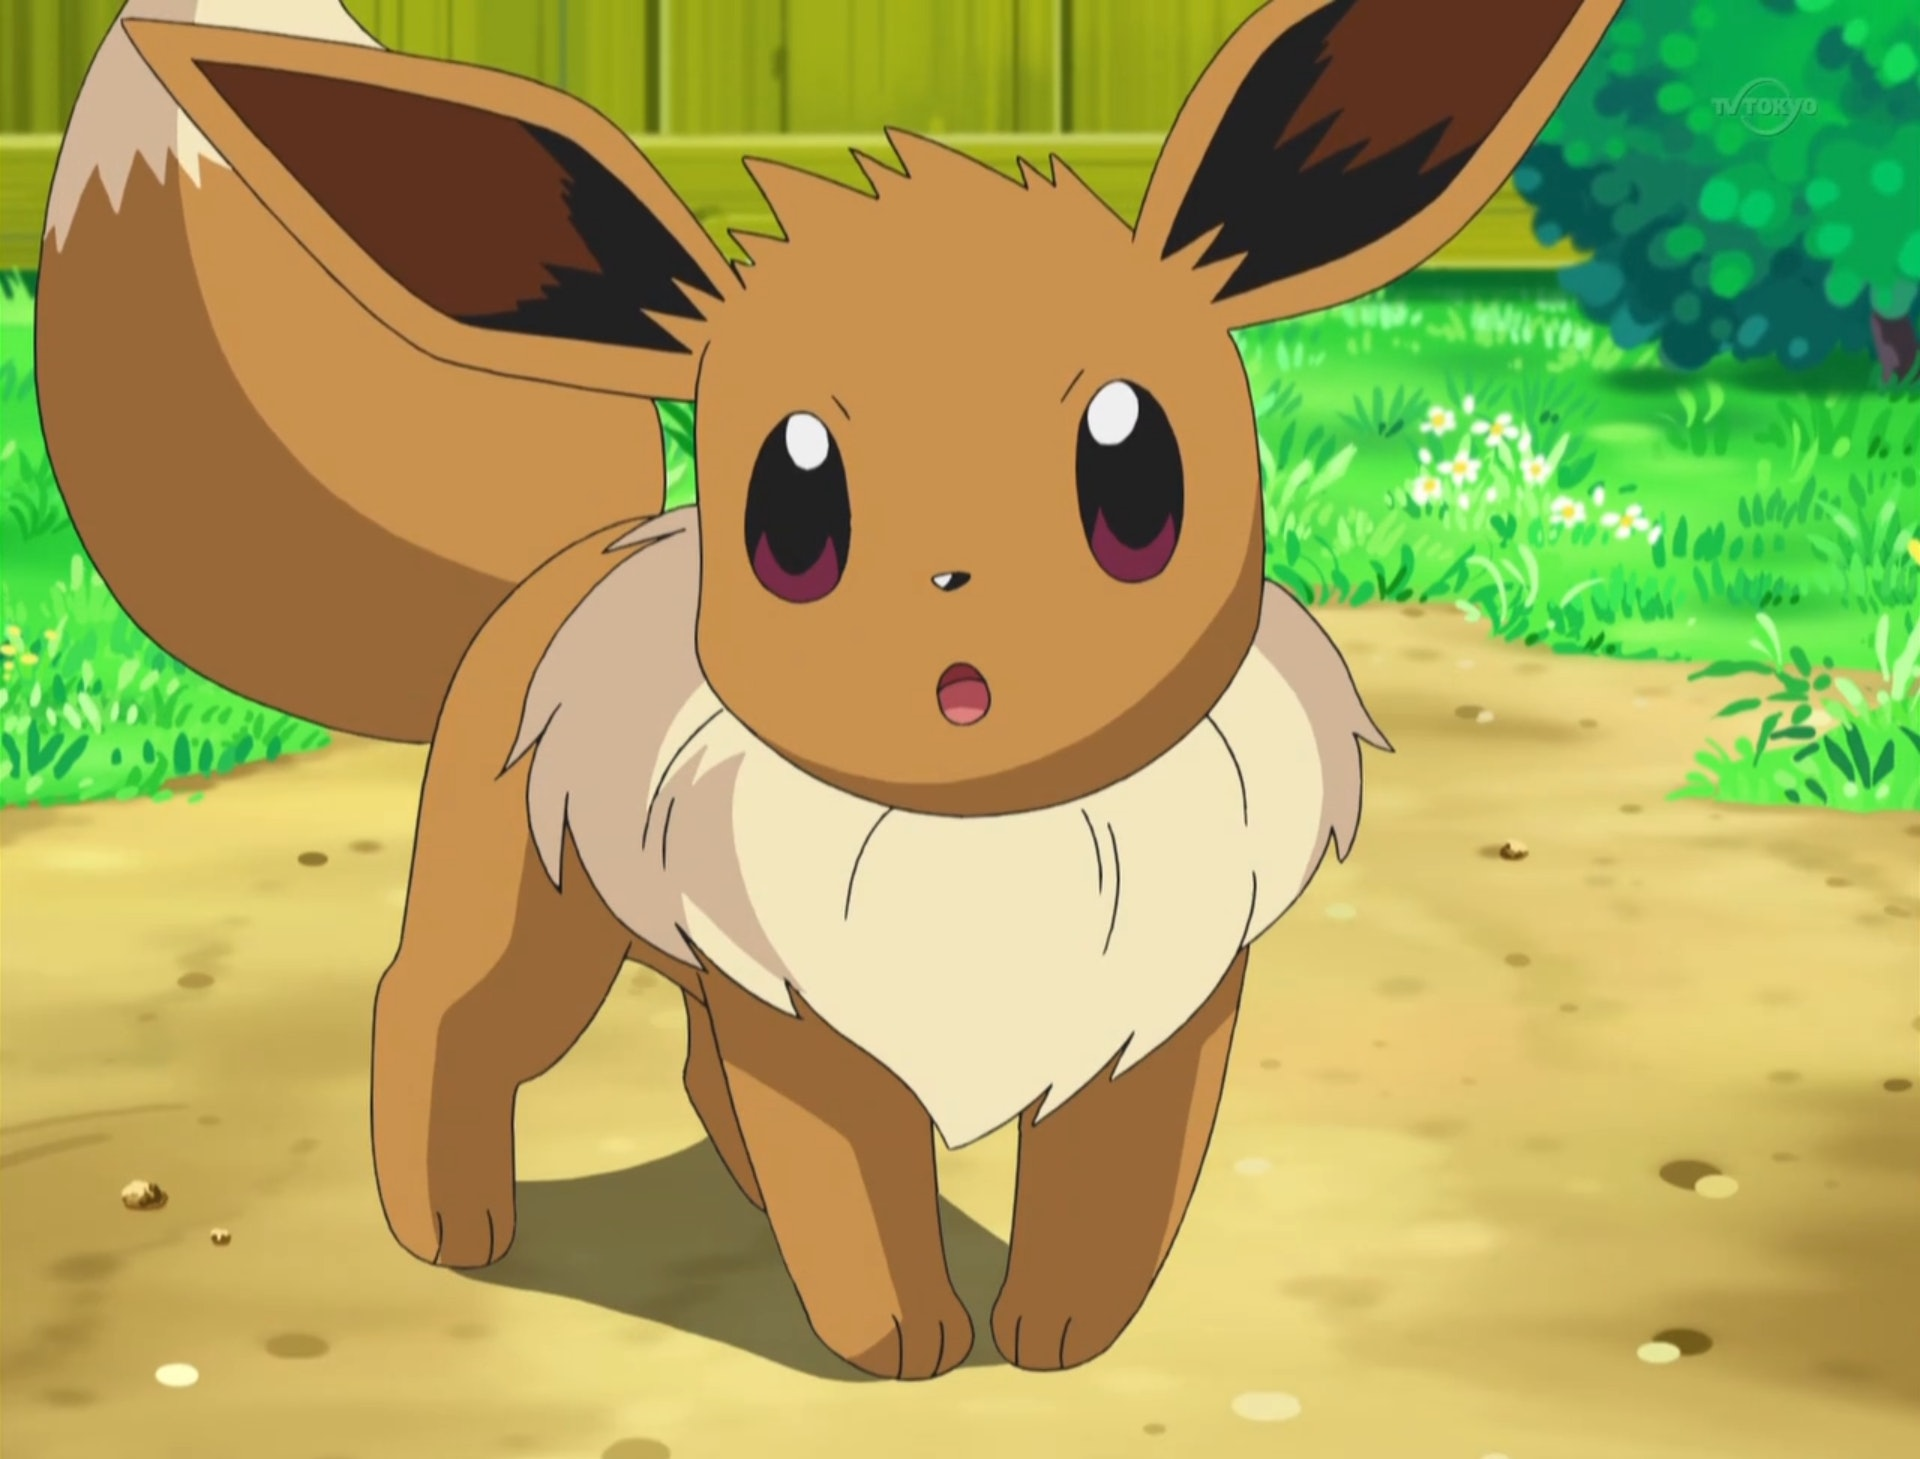 & 3 Easy Eevee Costumes For Pokemon Fans Of All Ages